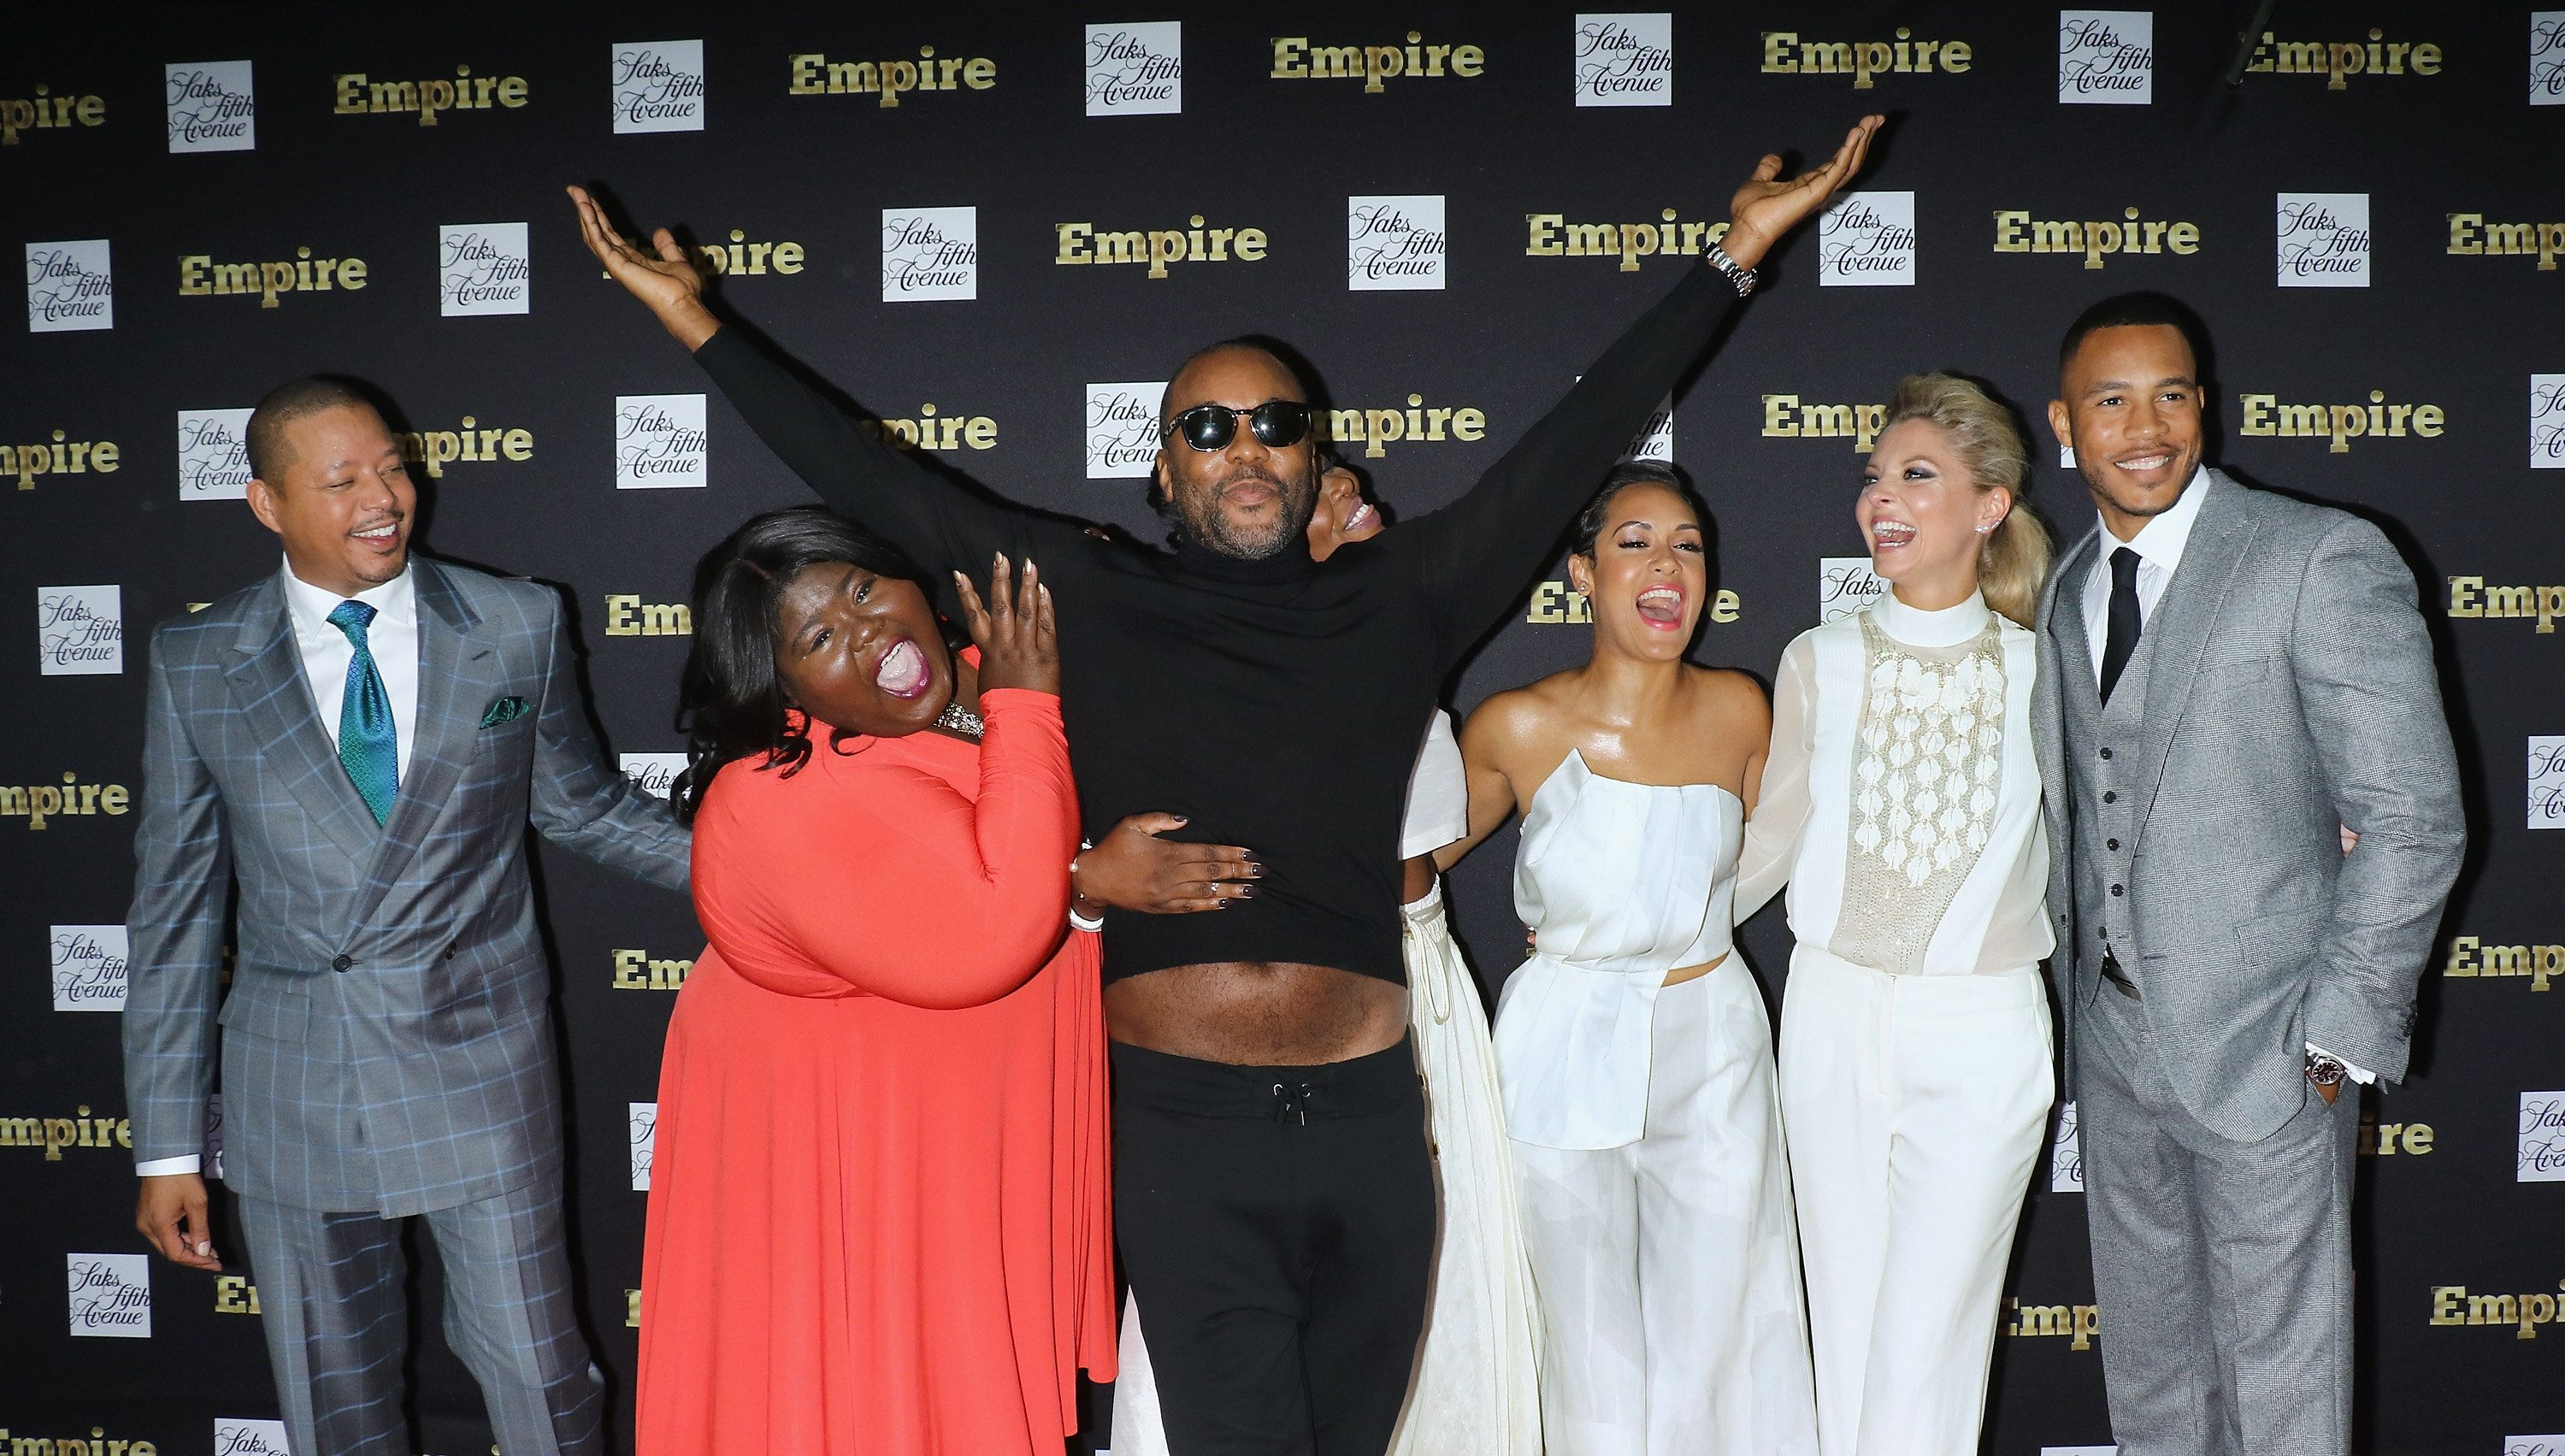 NEW YORK, NY - SEPTEMBER 12:  Actors Terrence Howard, Gabourey Sidibe, director/producer Lee Daniels, actress/rapper Ta'Rhonda Jones, actors Kaitlin Doubleday and Trai Byers attend the 'Empire' curated collection unveiling at Saks Fifth Avenue on September 12, 2015 in New York City.  (Photo by Jim Spellman/WireImage)